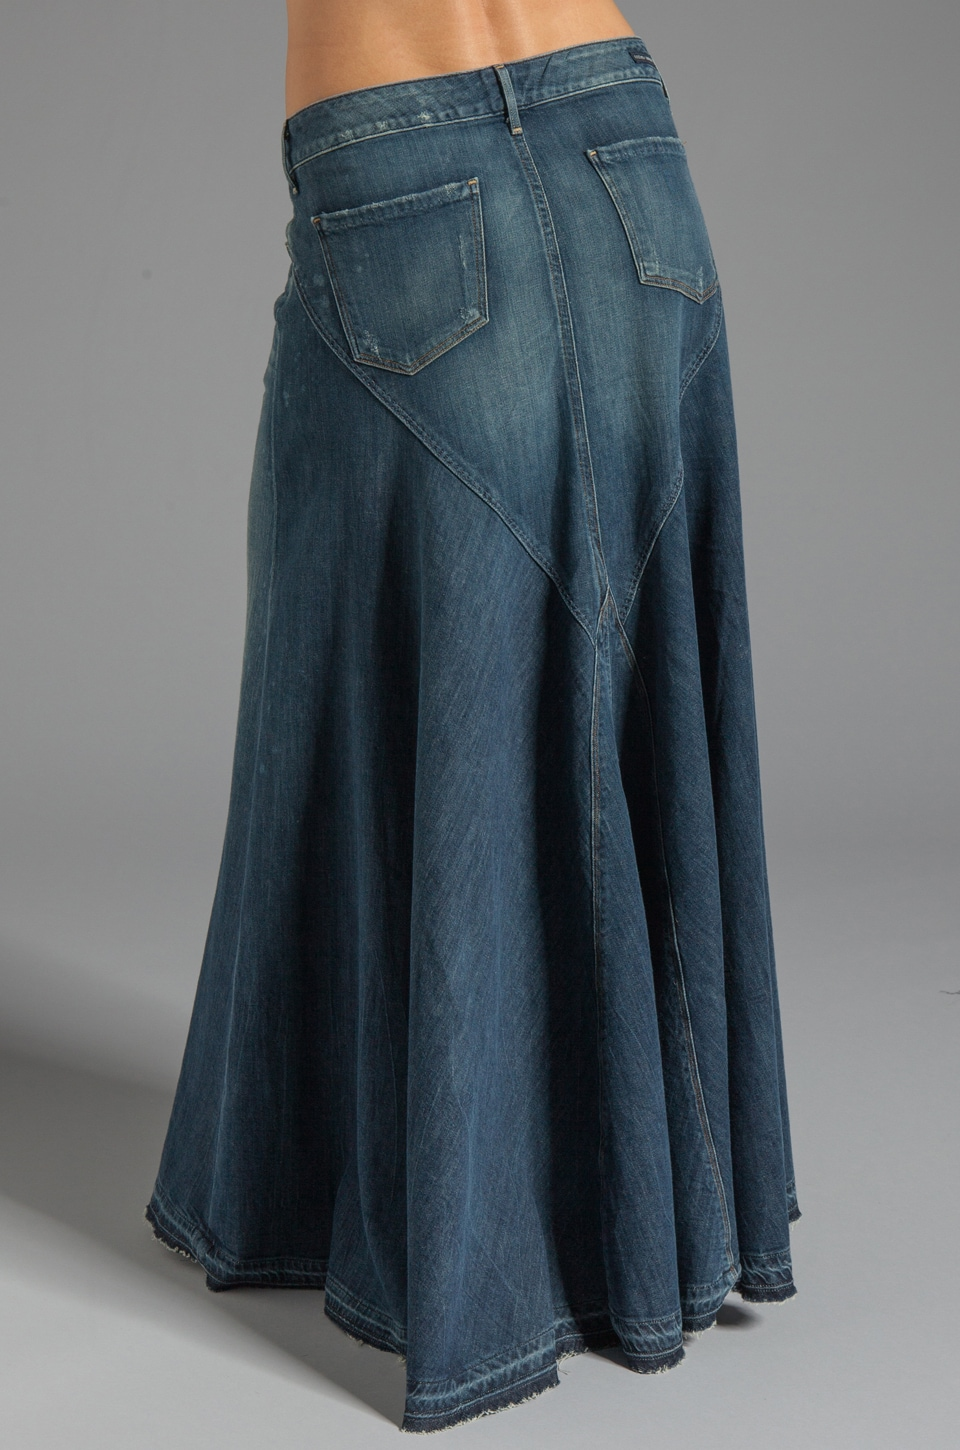 Blue Jean Maxi Skirt - Dress Ala